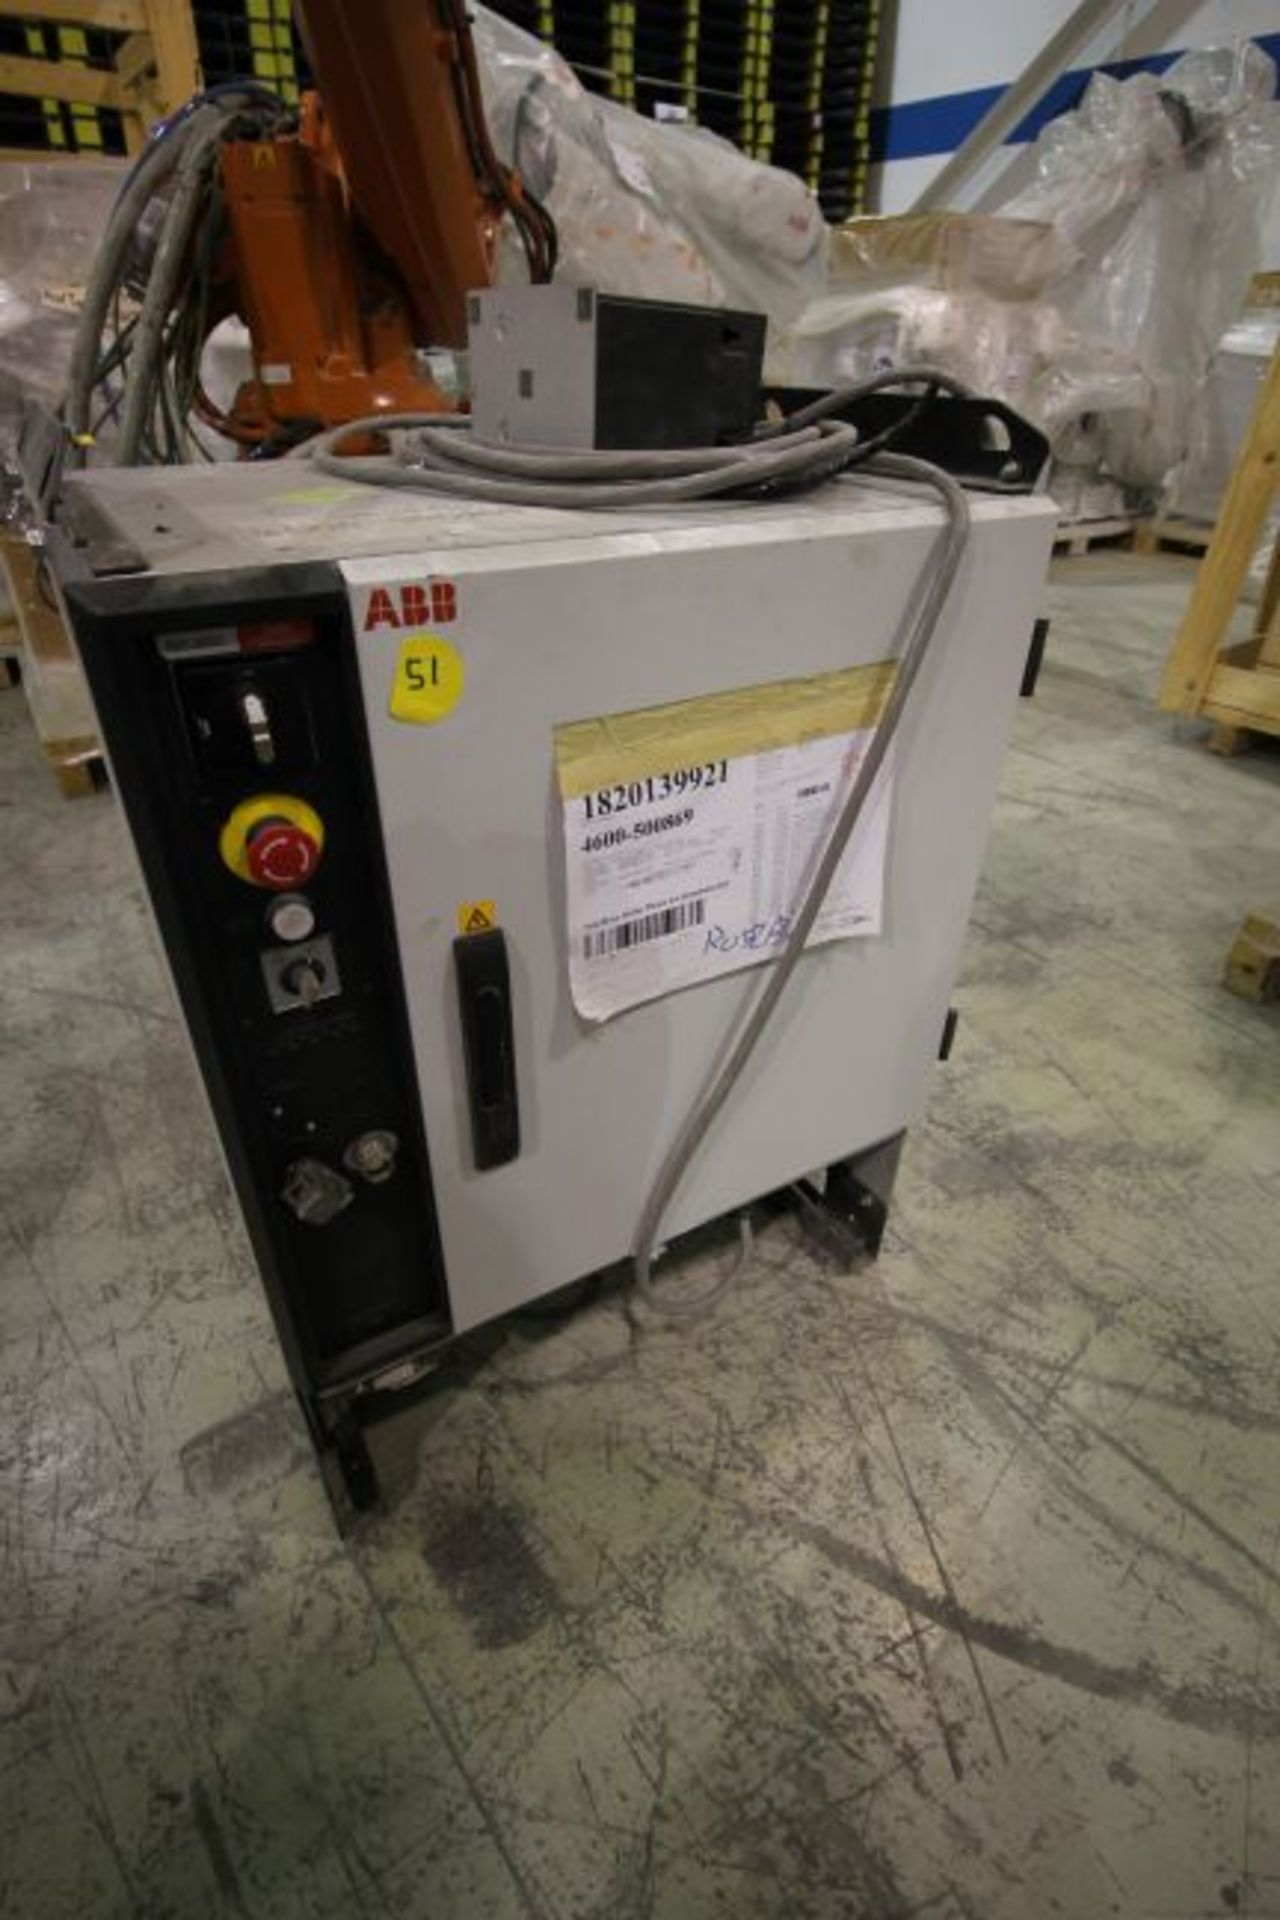 ABB ROBOT IRB 4600 2.55/40KG WITH IRC5 CONTROLS, YEAR 2014, SN 500869TEACH PENDANT& CABLES - Image 5 of 9